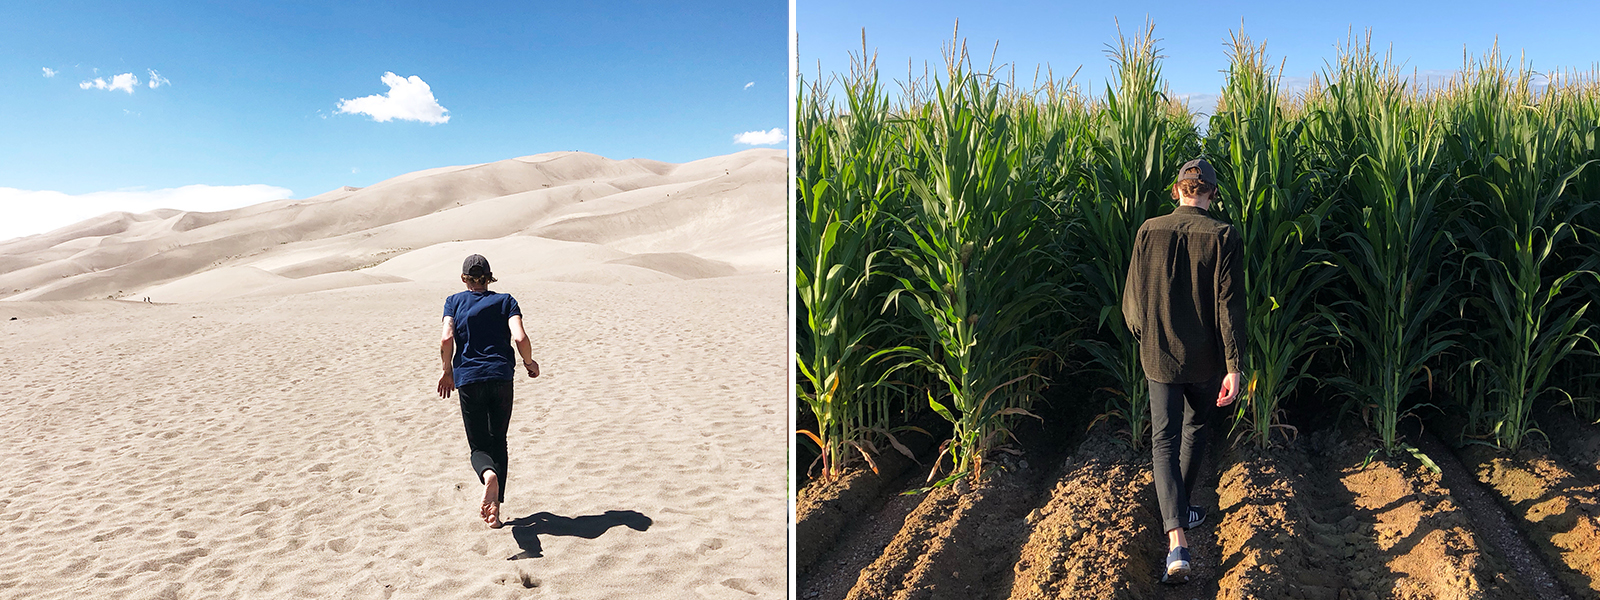 Running through Great San Dunes National Park and Preserve. Cornfields in Colorado